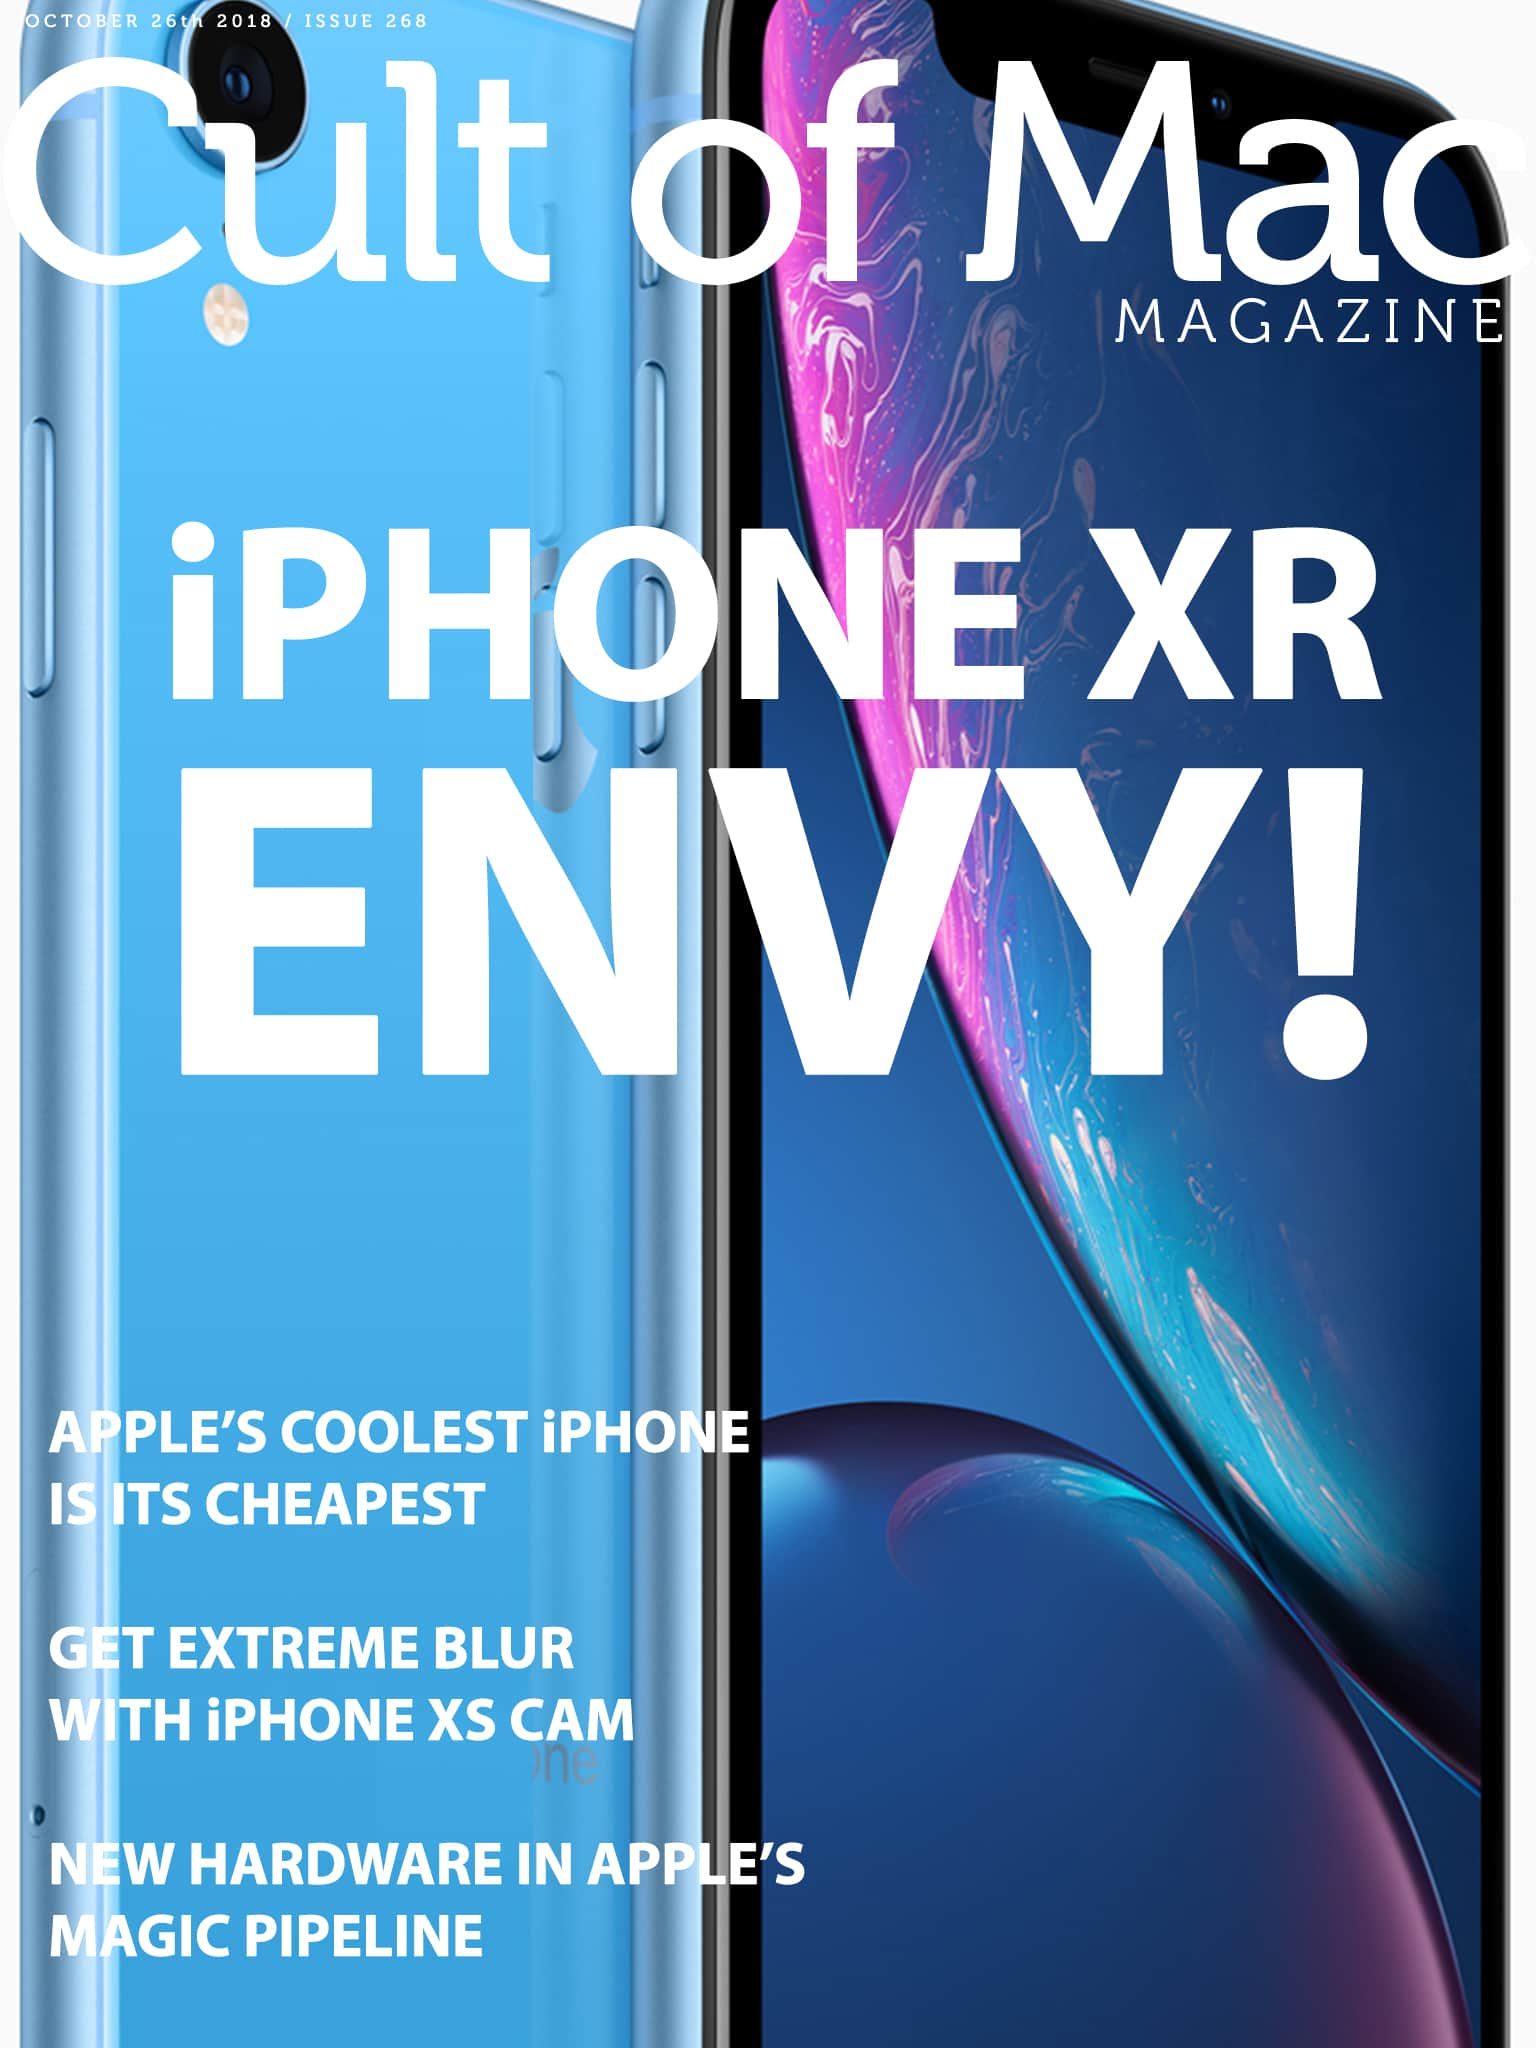 Just how good is the iPhone XR? We're head over heels! Read all about it in Cult of Mac Magazine Issue No. 268.